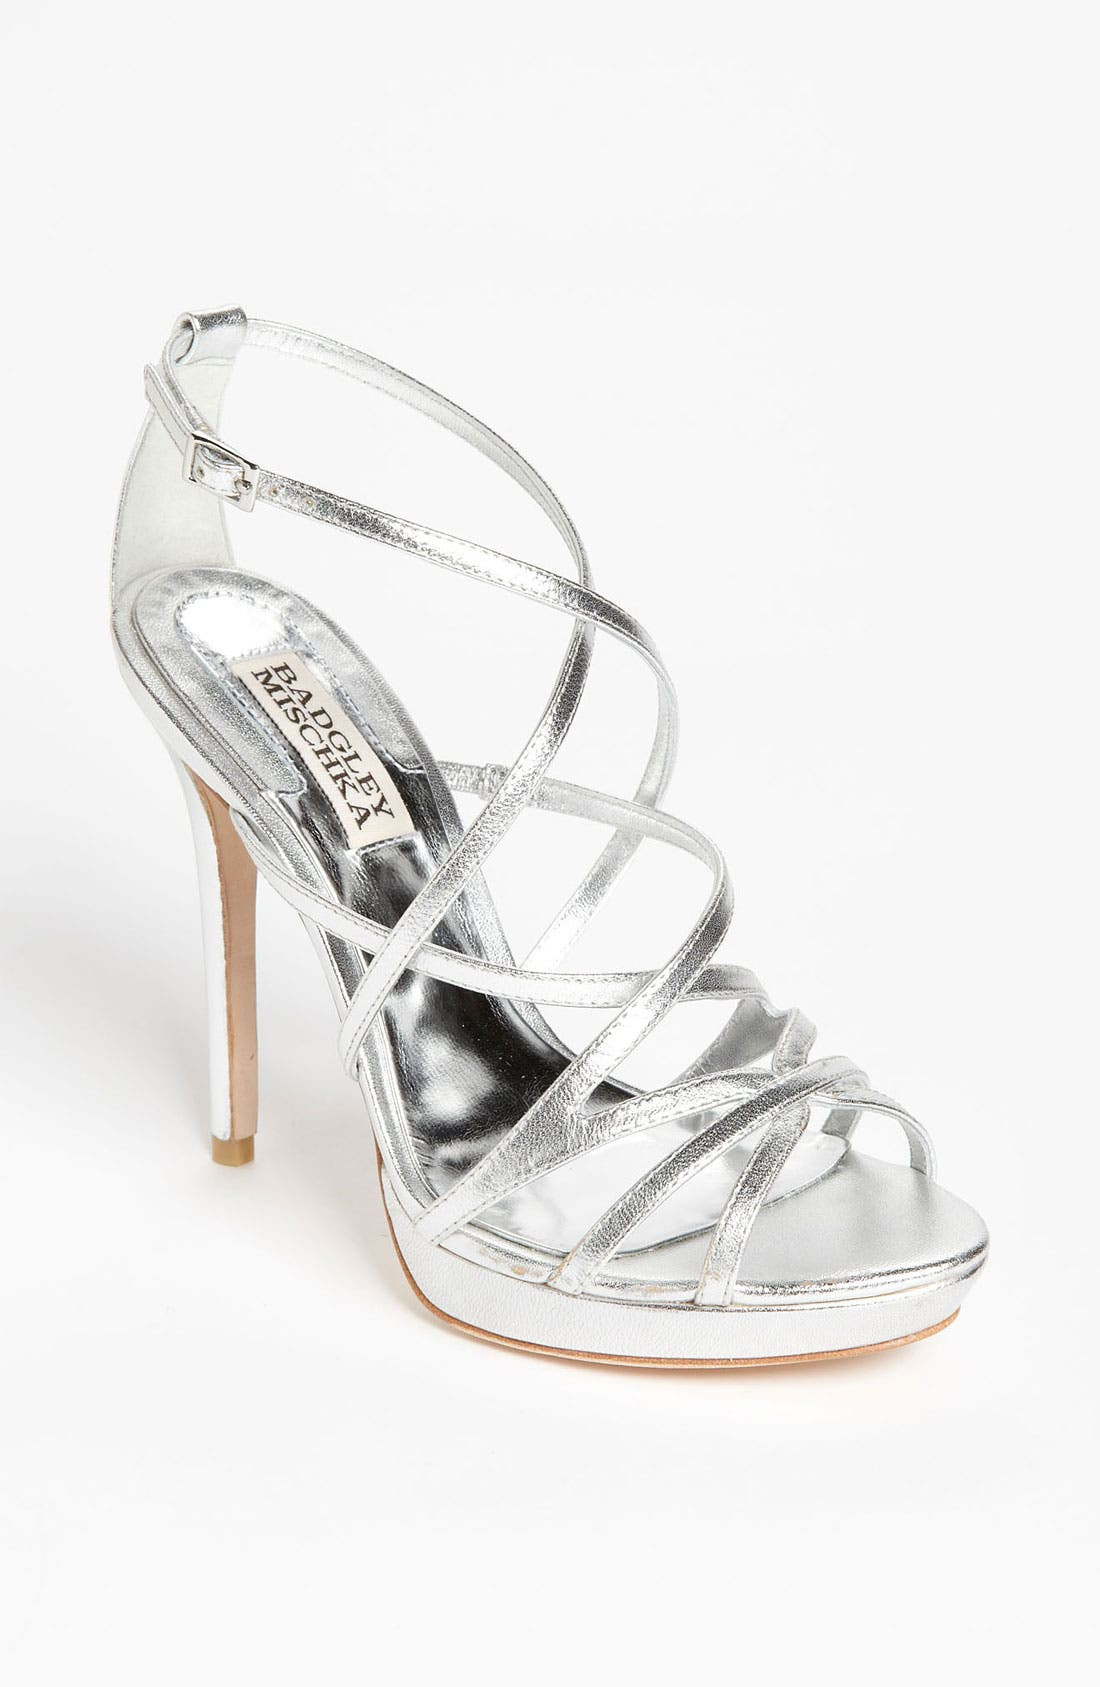 Alternate Image 1 Selected - Badgley Mischka 'Adonis II' Sandal